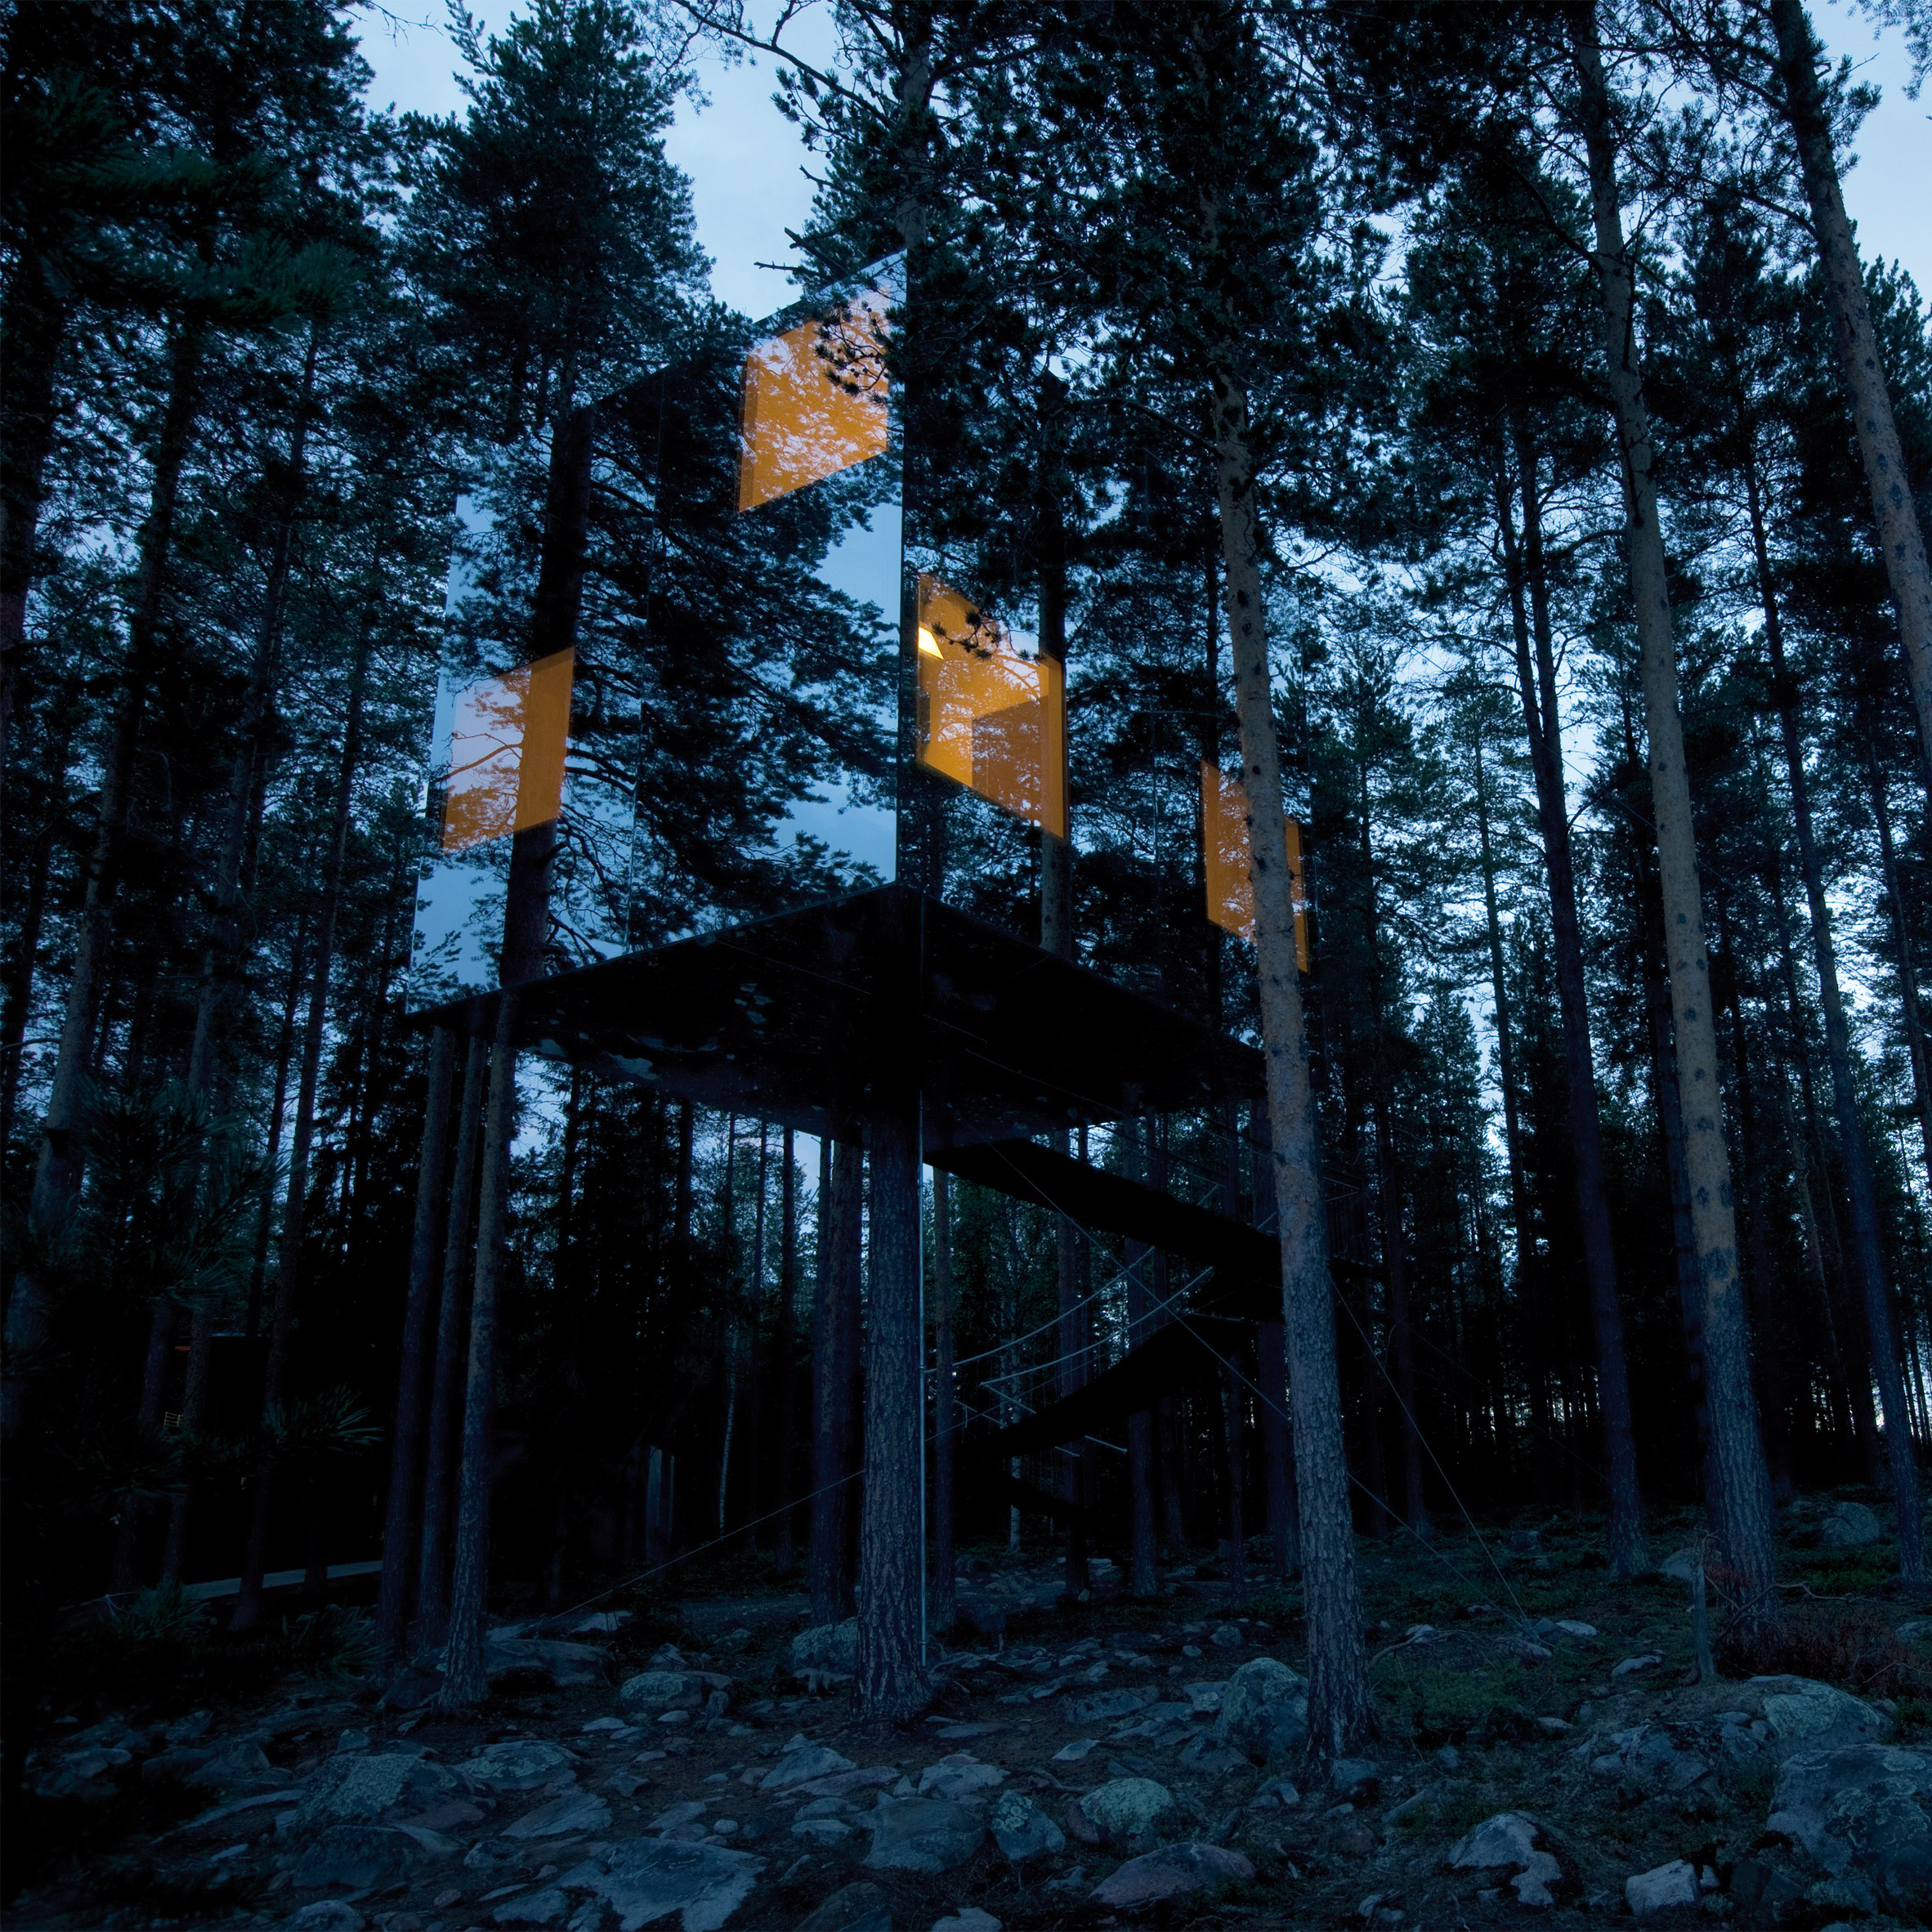 treehotel 3 Awesome Treehouses You Will Want to Sleep in at Sweden's Treehotel sweeden treehotel architecture tree houses 1